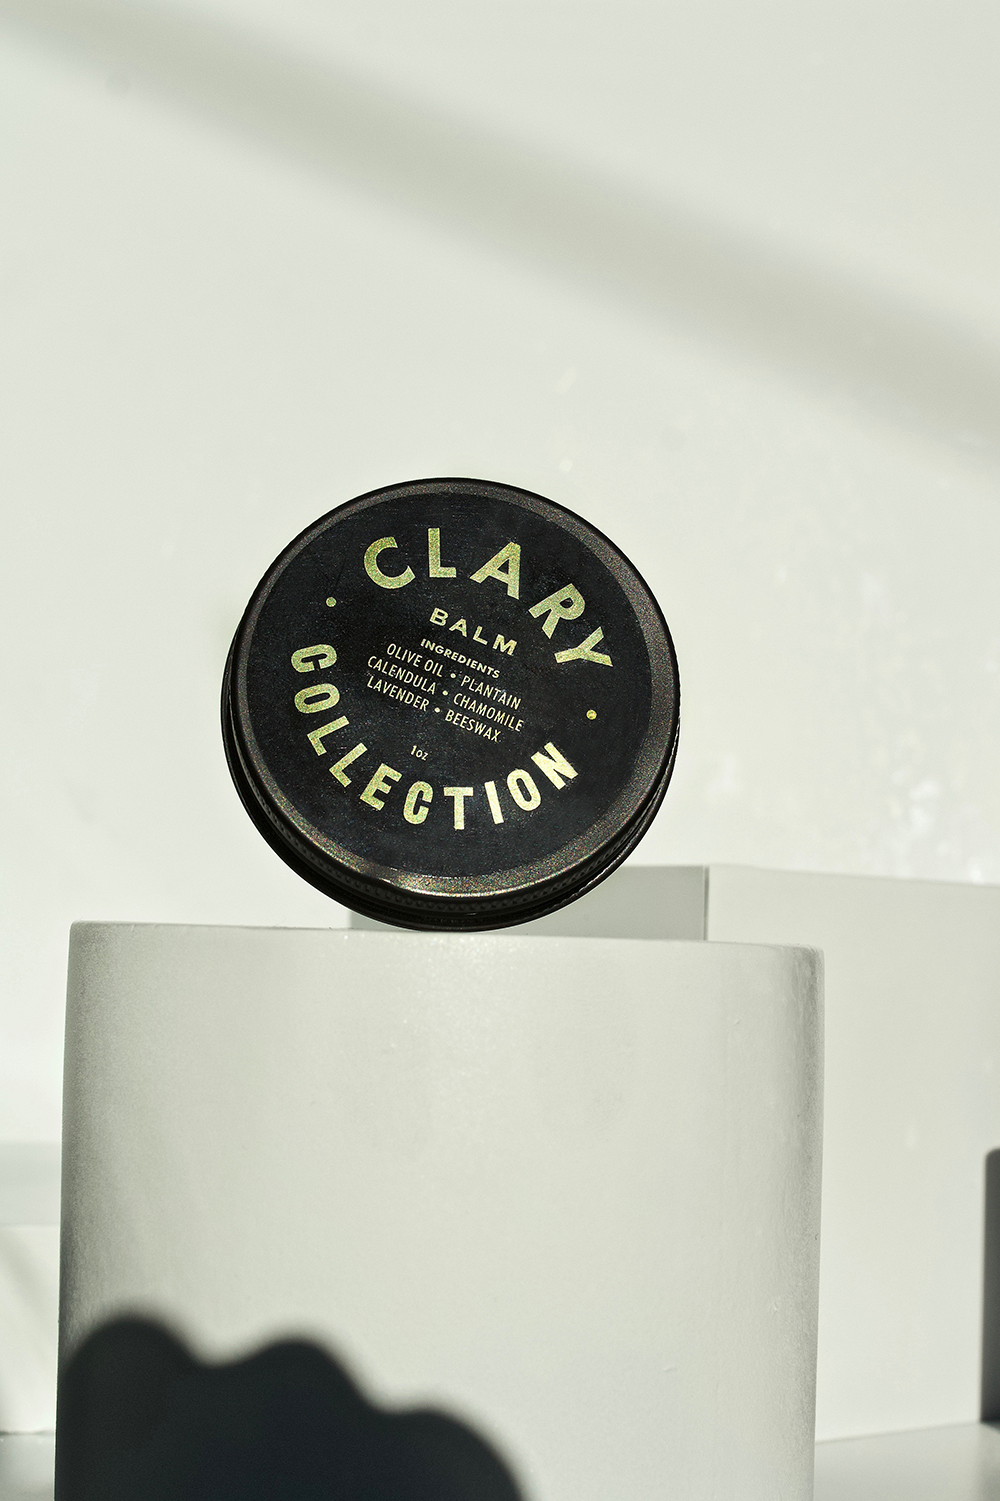 clary collection all-purpose balm review